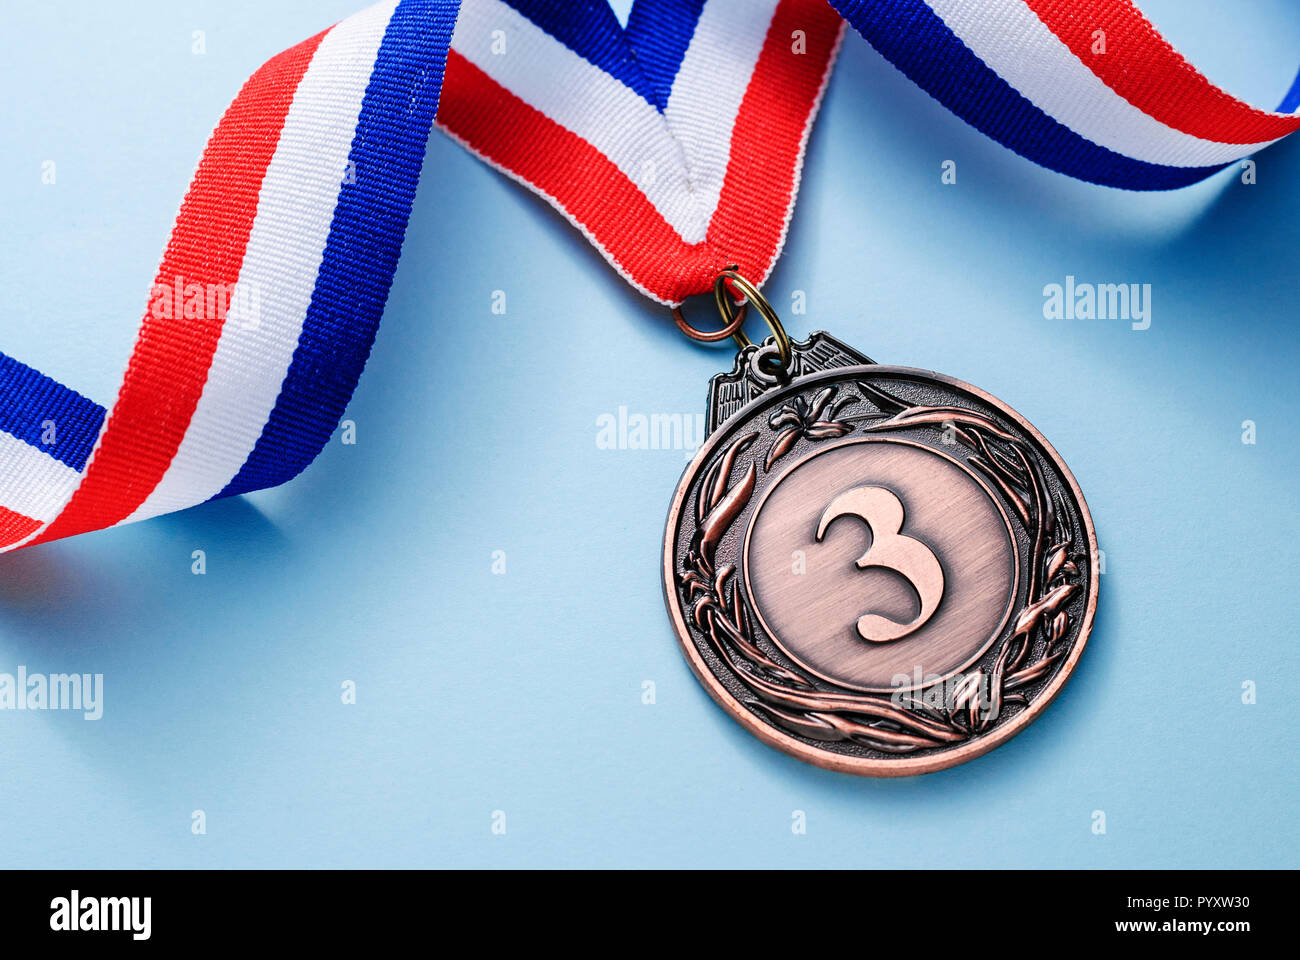 Bronze medal 3 place with a ribbon - Stock Image